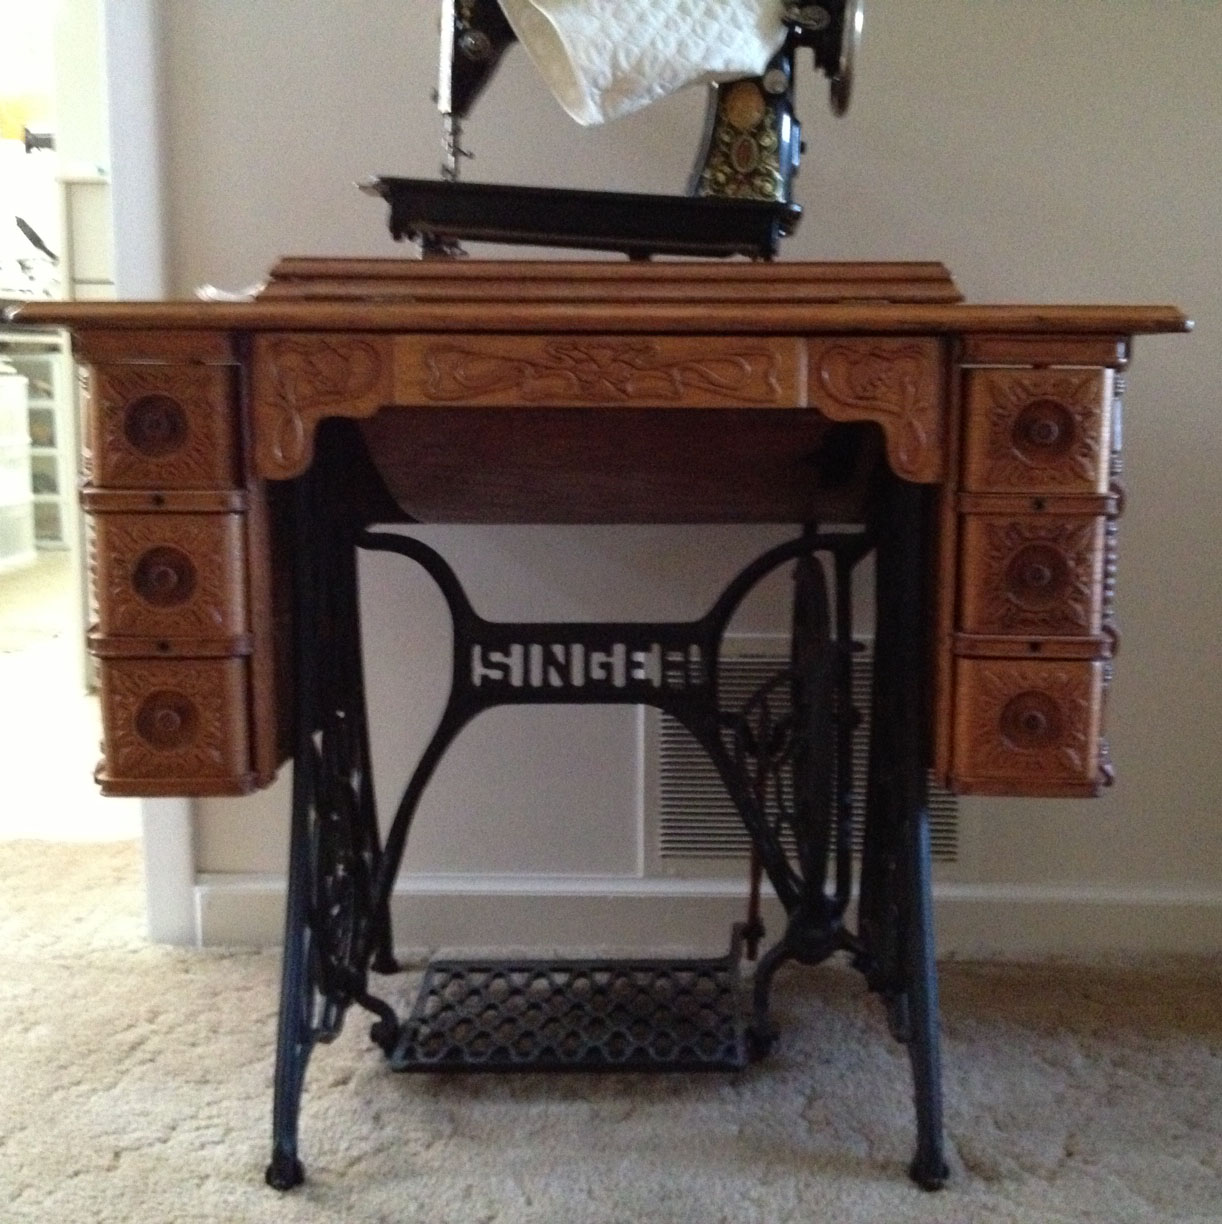 So, I was inspired to get my sewing machine collection out of storage,  clean them up a bit and to see if they still sew. My favorite is the  'Singer Red Eye' ... - Shenandoah Valley Quilter: My Vintage Sewing Machine Collection